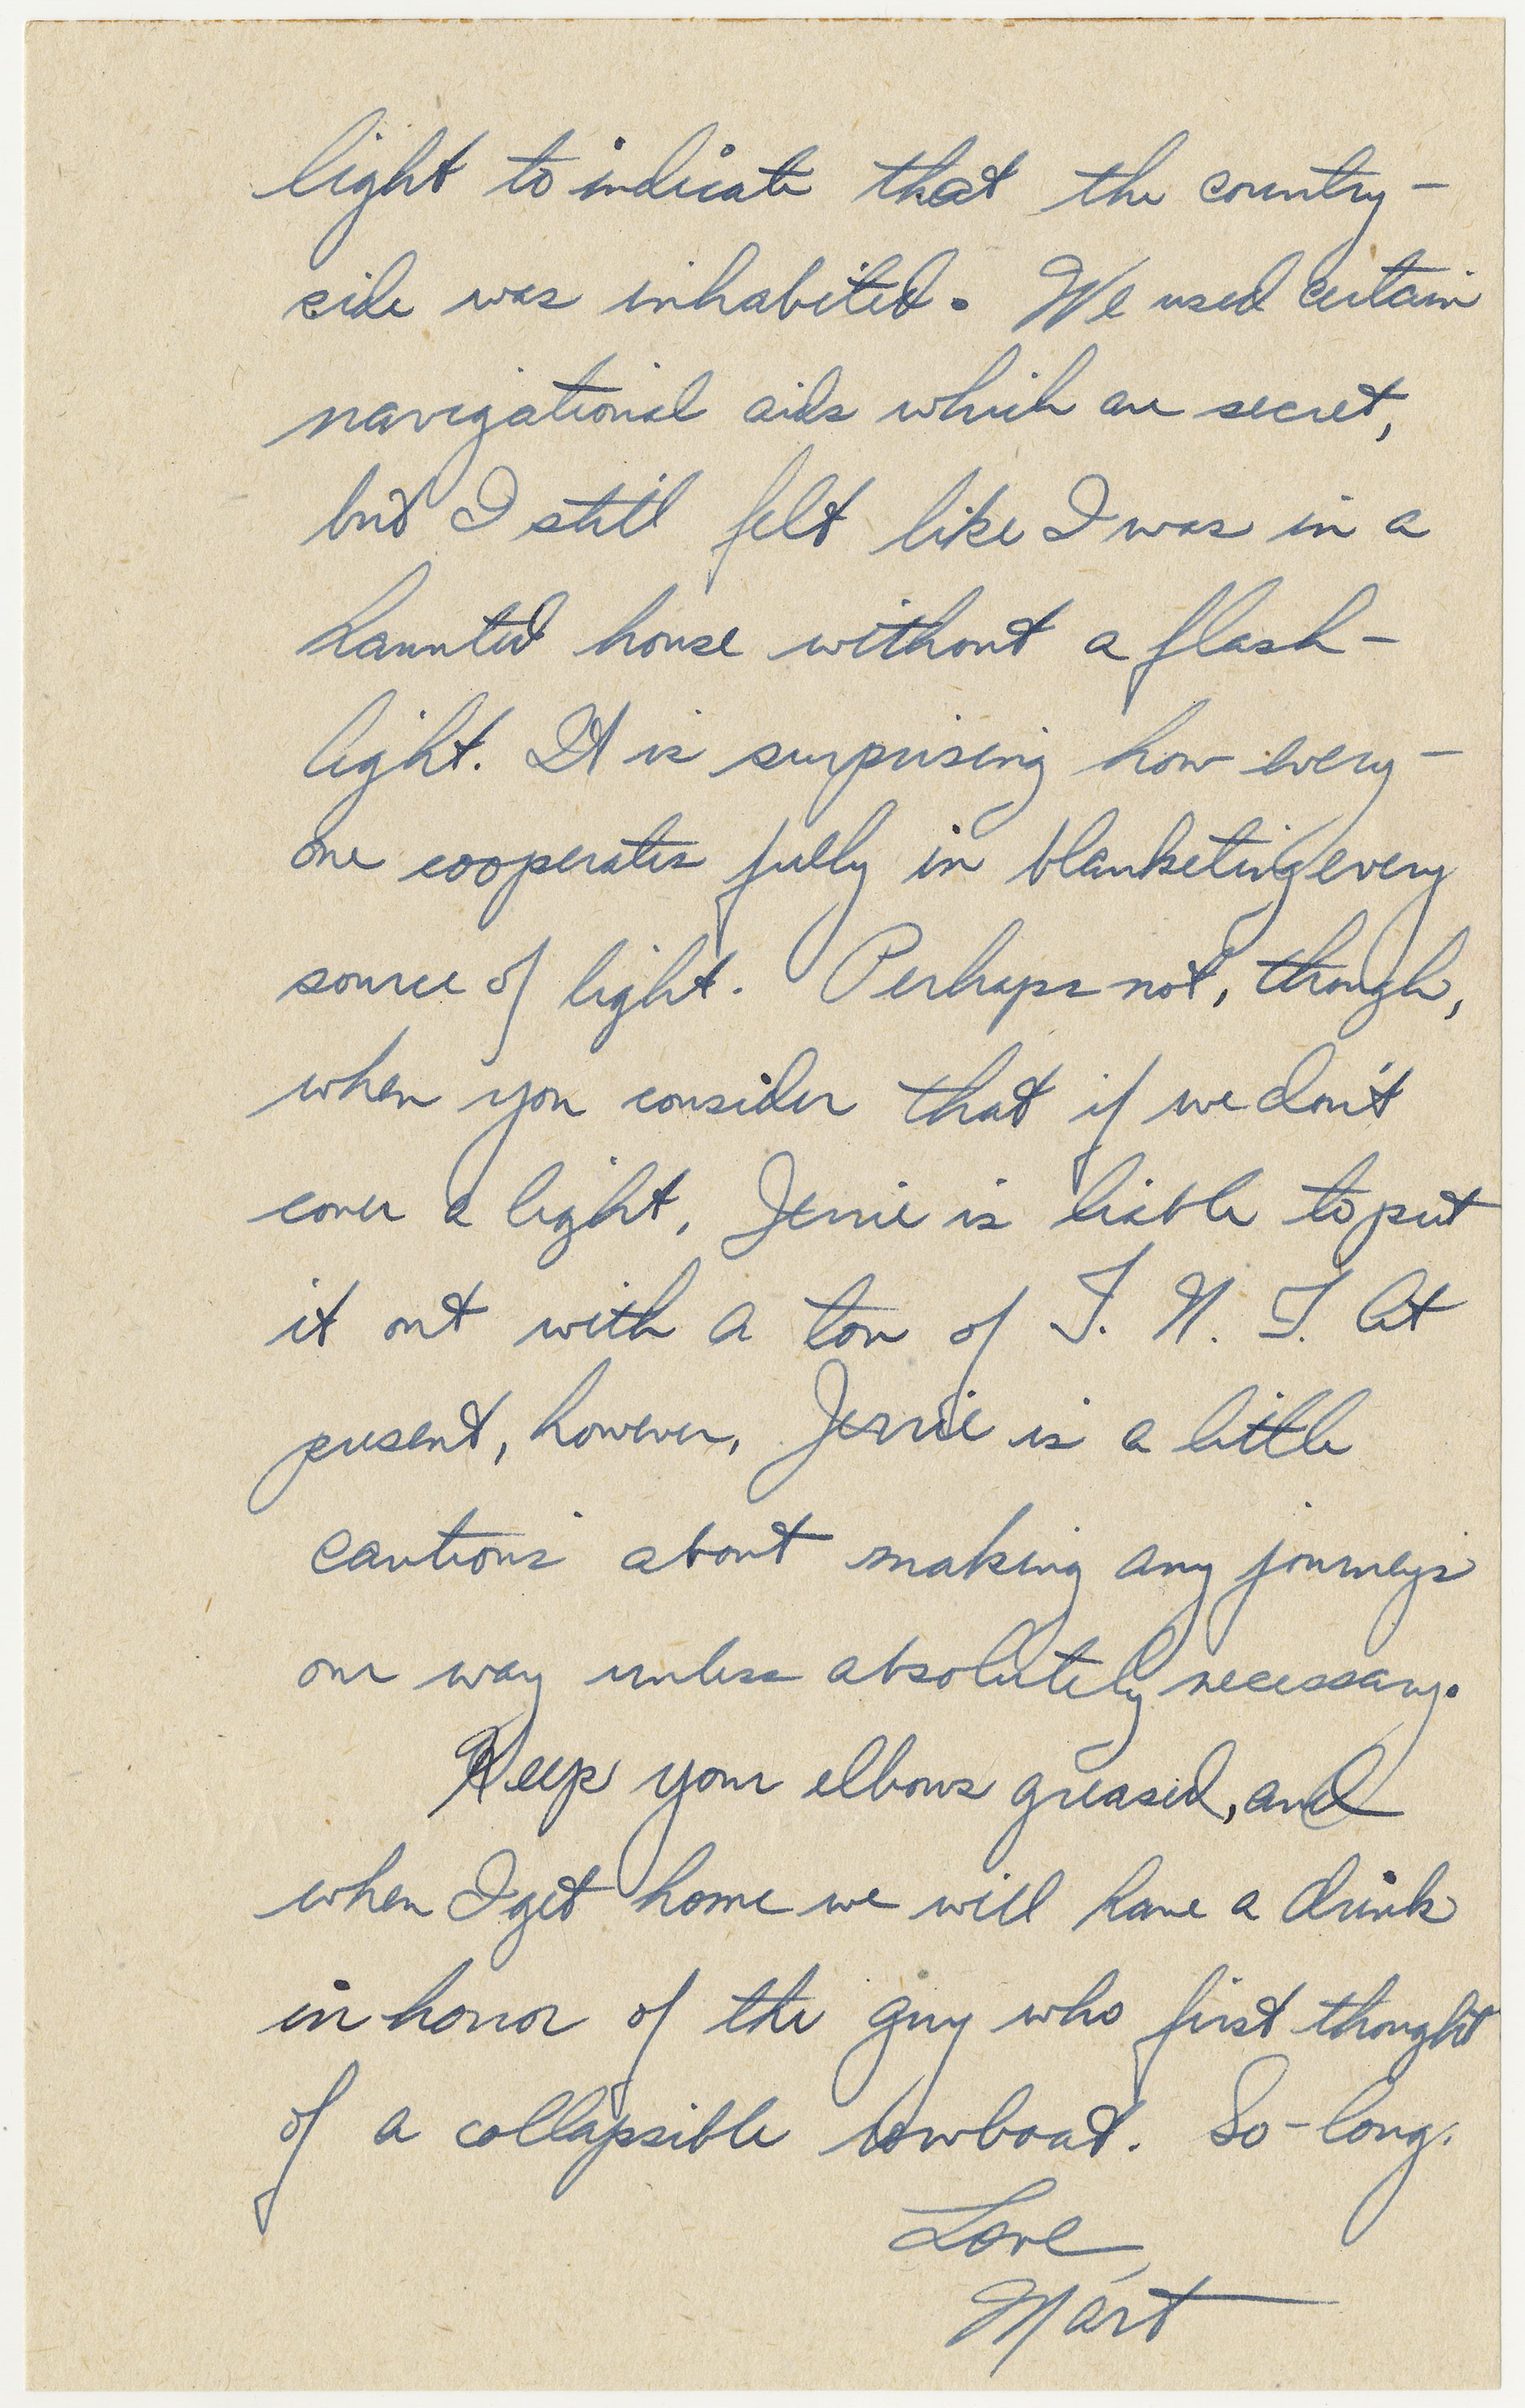 page 3 of letter written by Bischoff on May 24, 1944